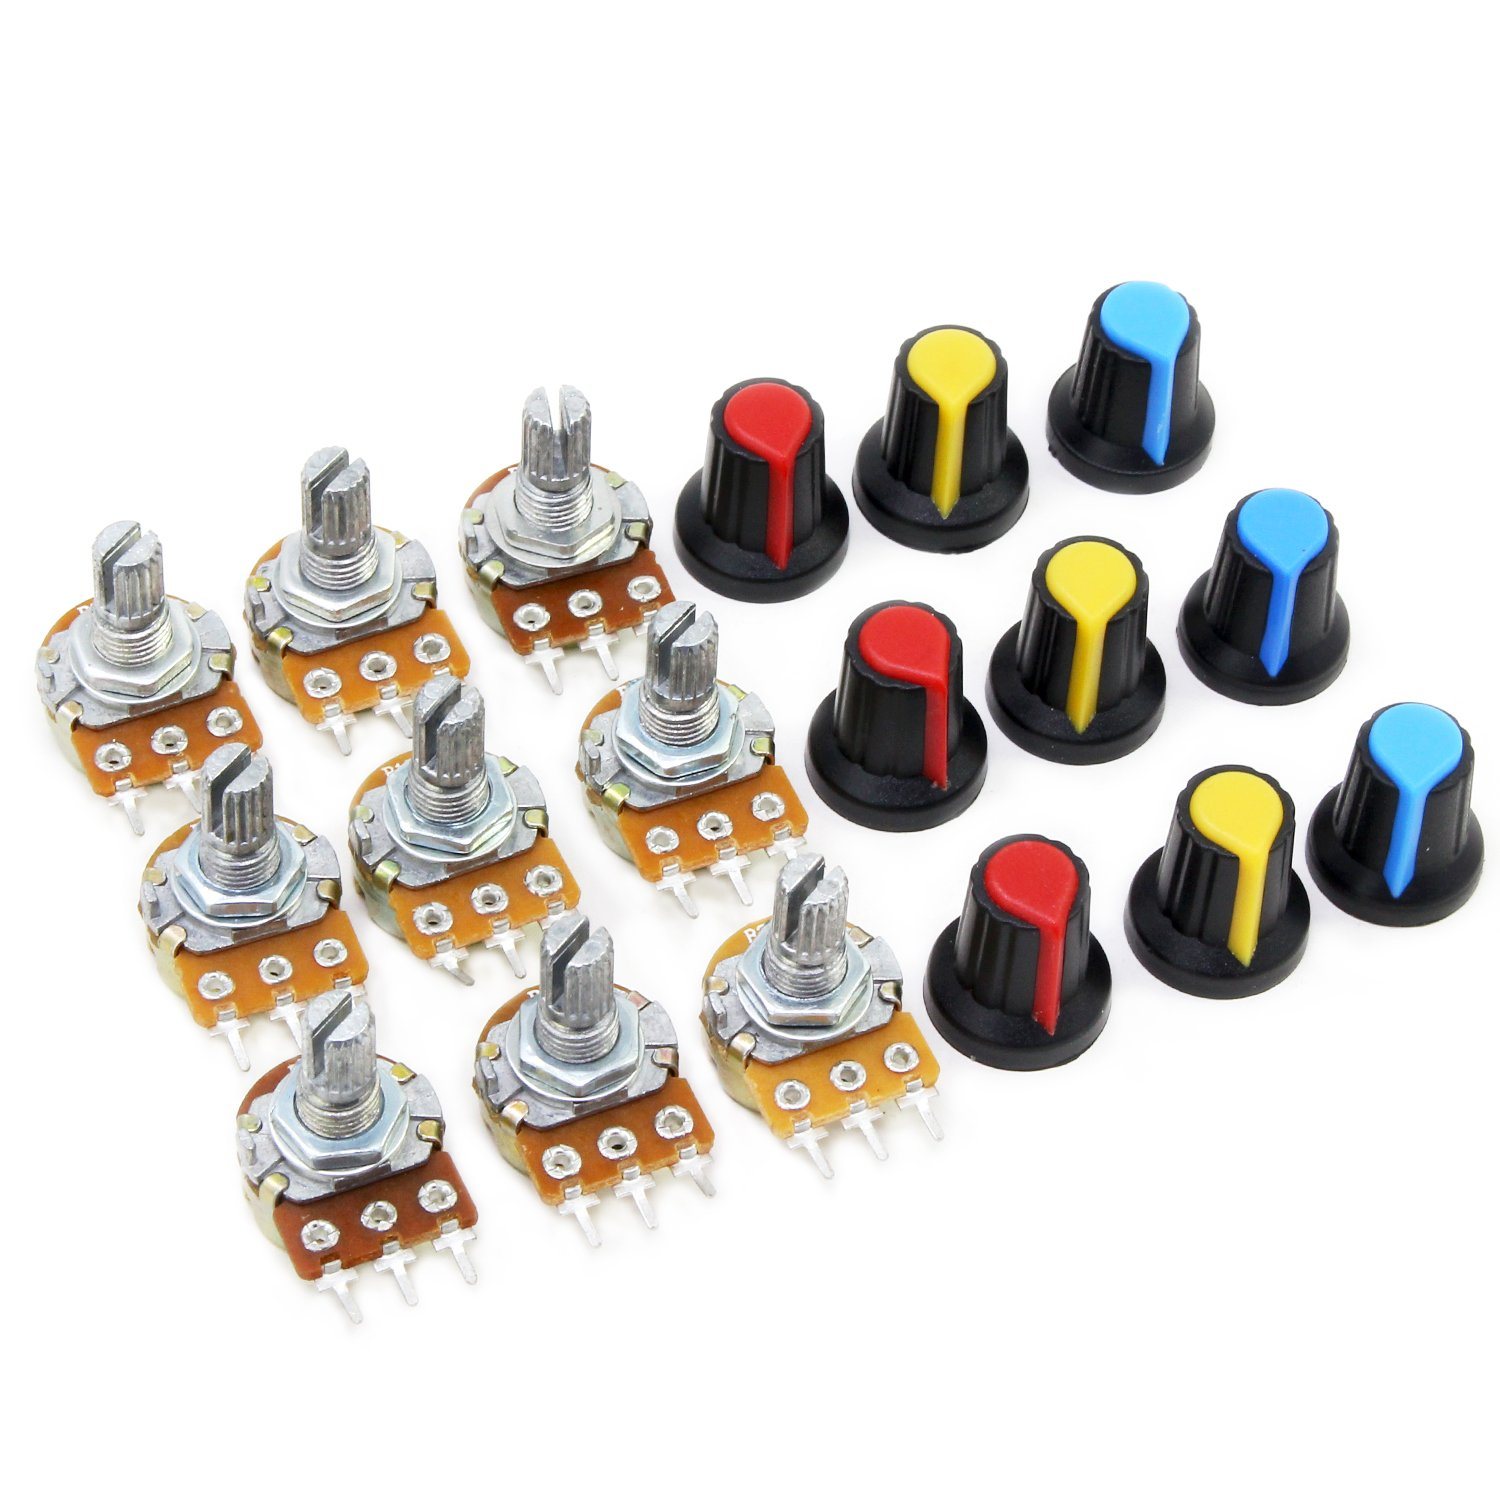 AIKE 1K 2K 5K 10K 20K 50K 100K 500K 1M Linear Potentiometer w/Knob Assortment by AIKE (Image #3)